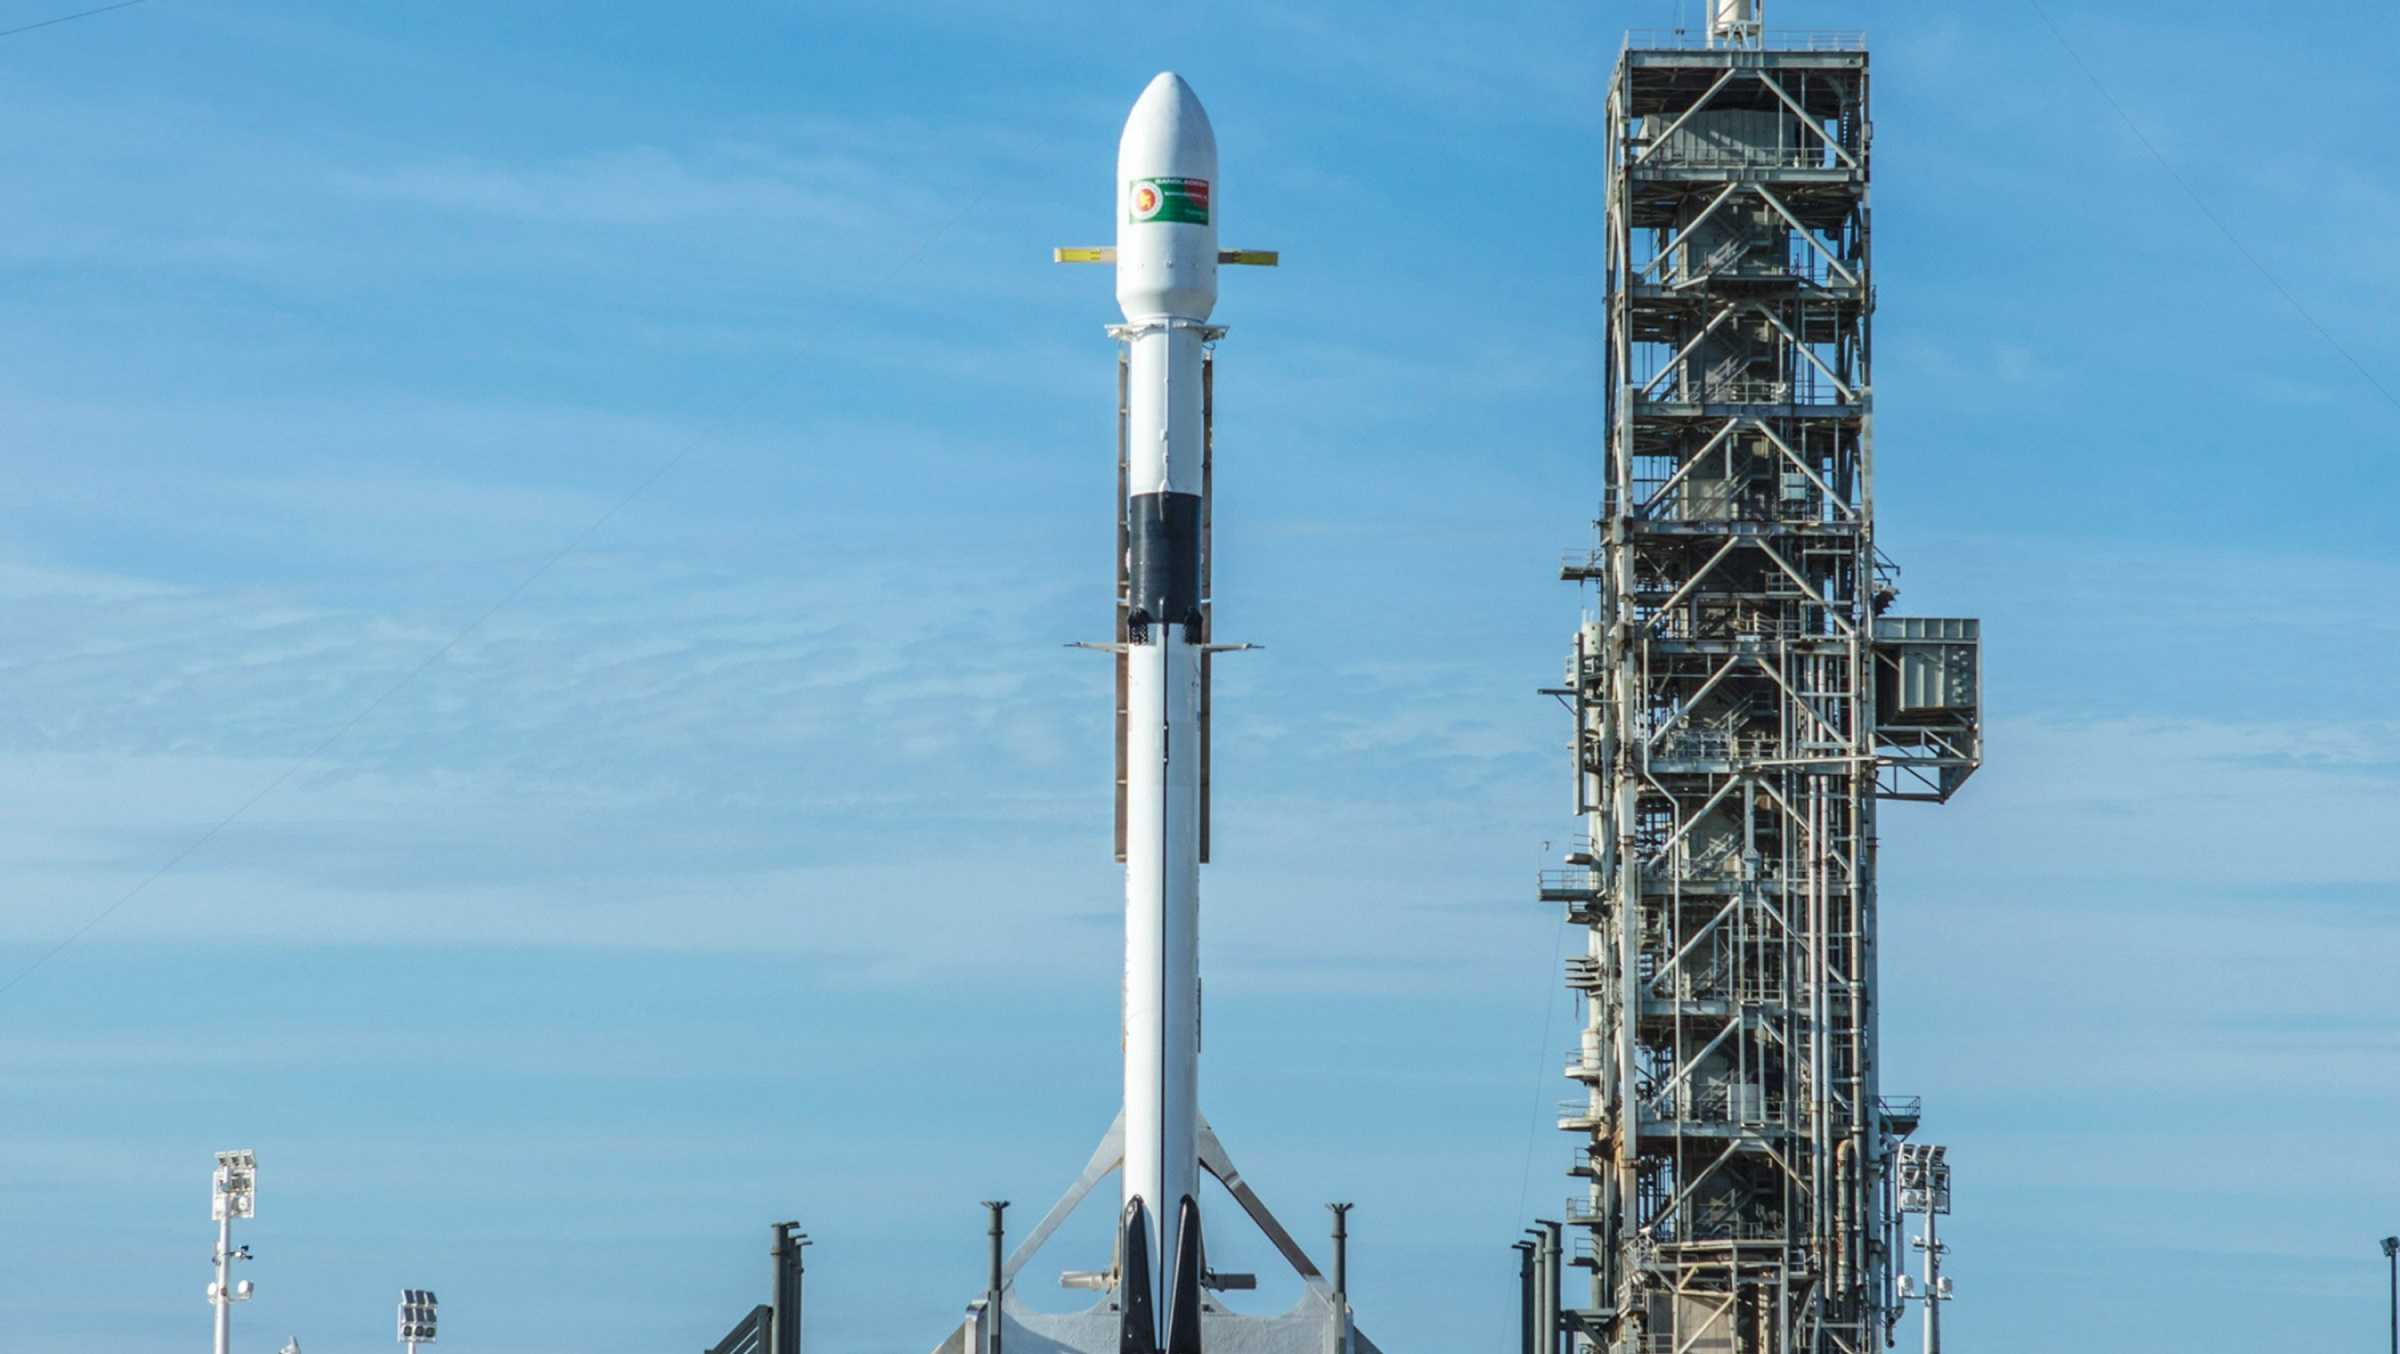 The SpaceX Falcon 9 rocket is readied for launch at Kennedy Space Center in Florida.